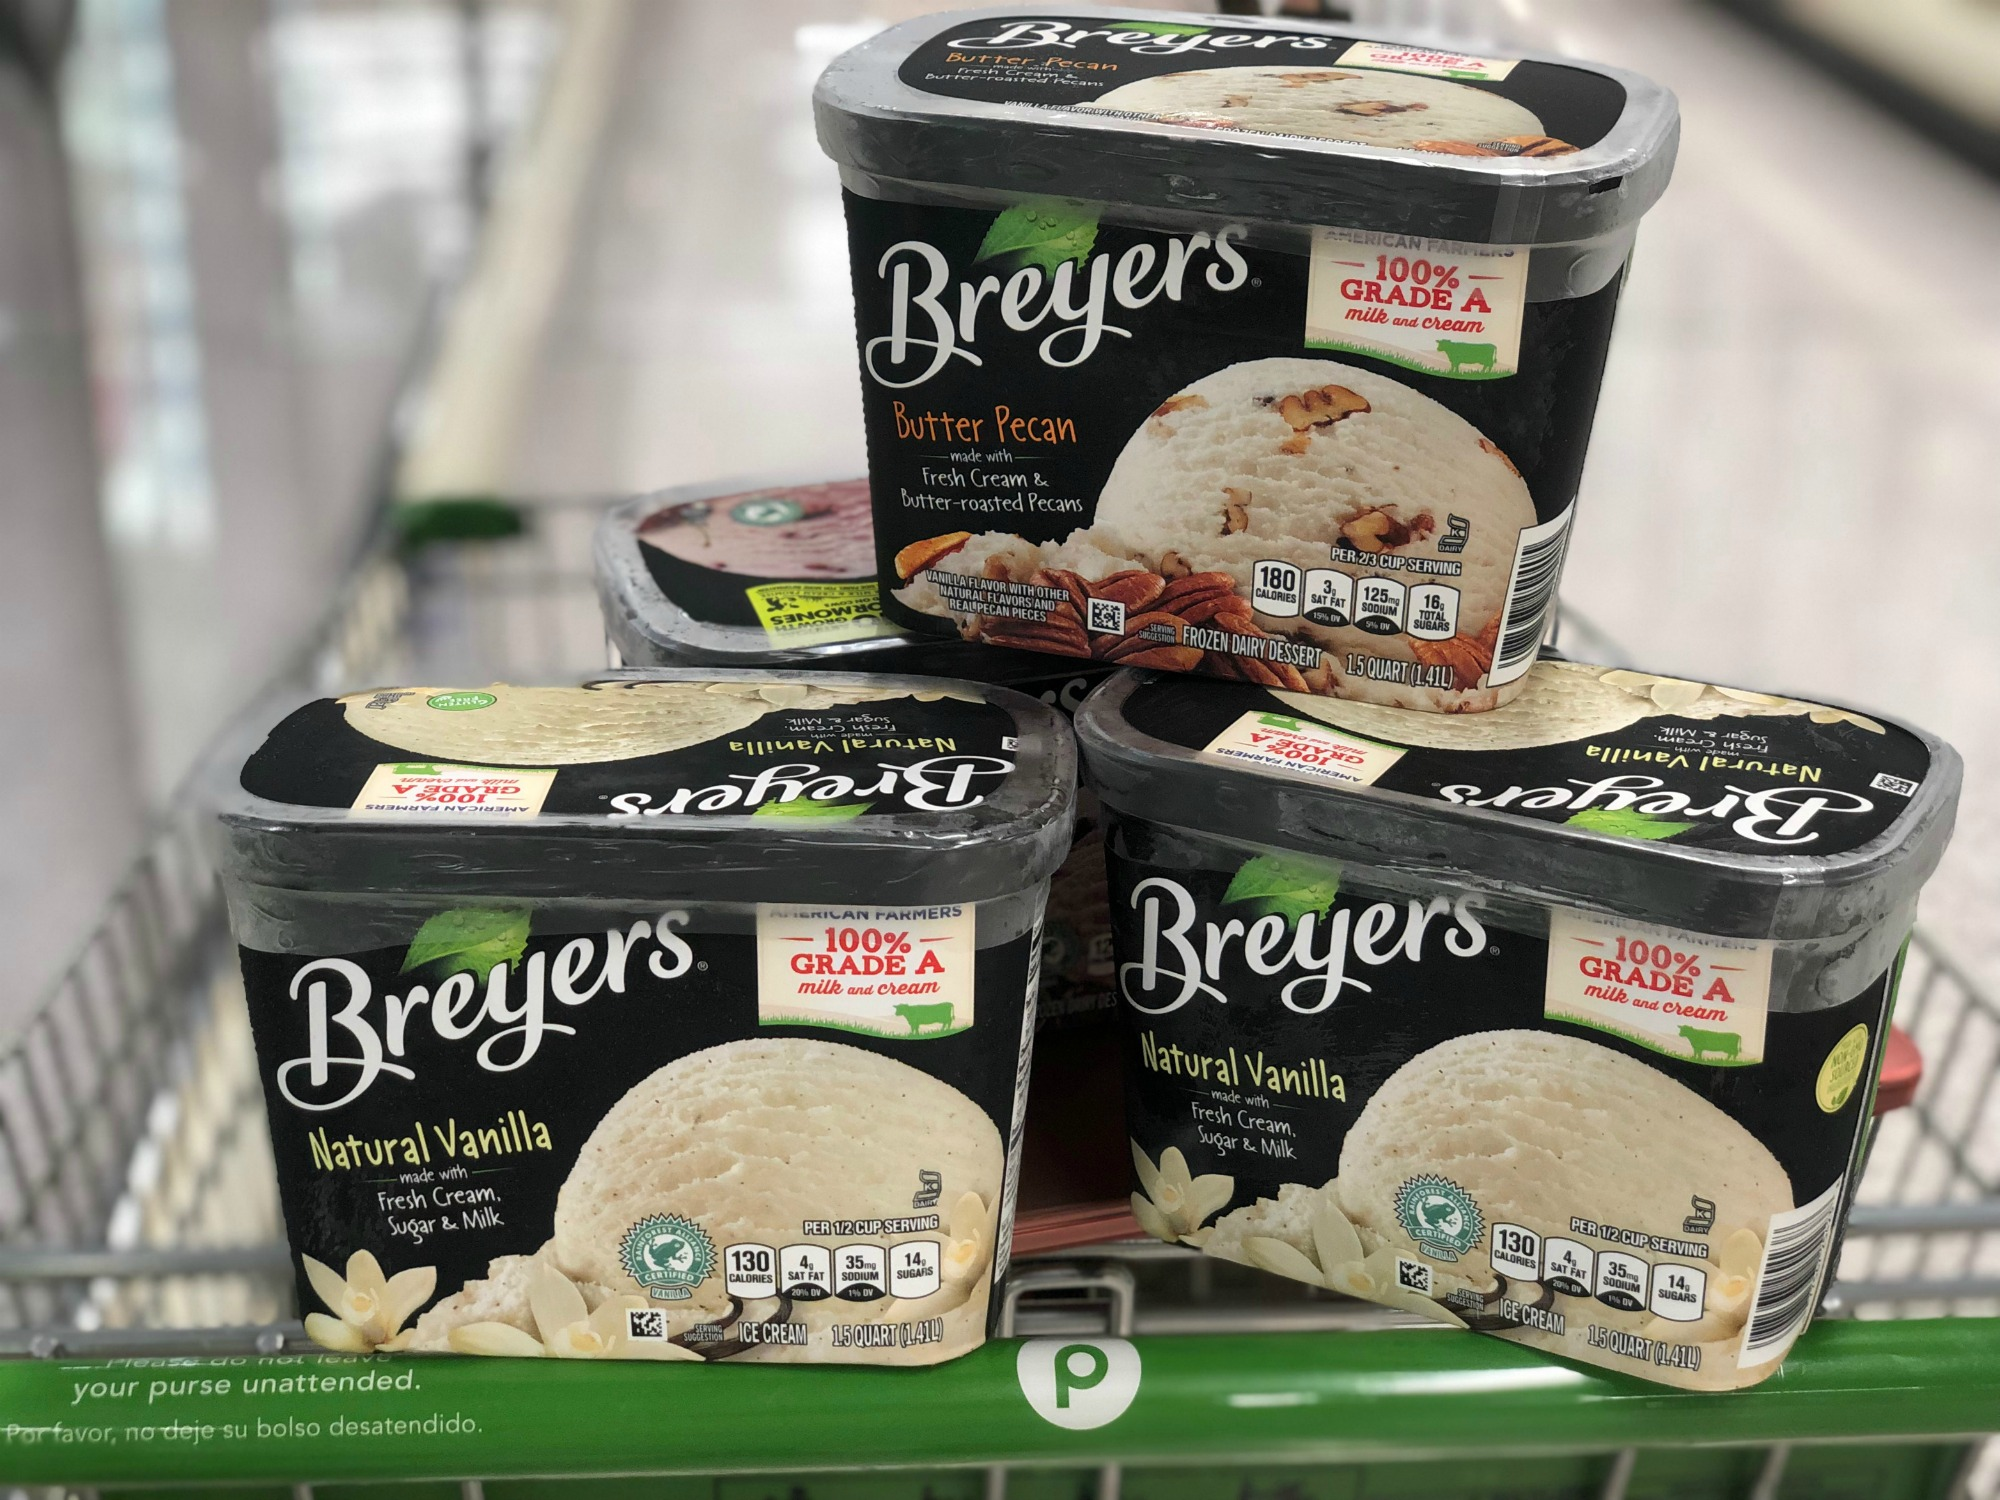 Fantastic Deal On Breyers Ice Cream This Week At Publix - Stock Your Freezer At A Great Price. on I Heart Publix